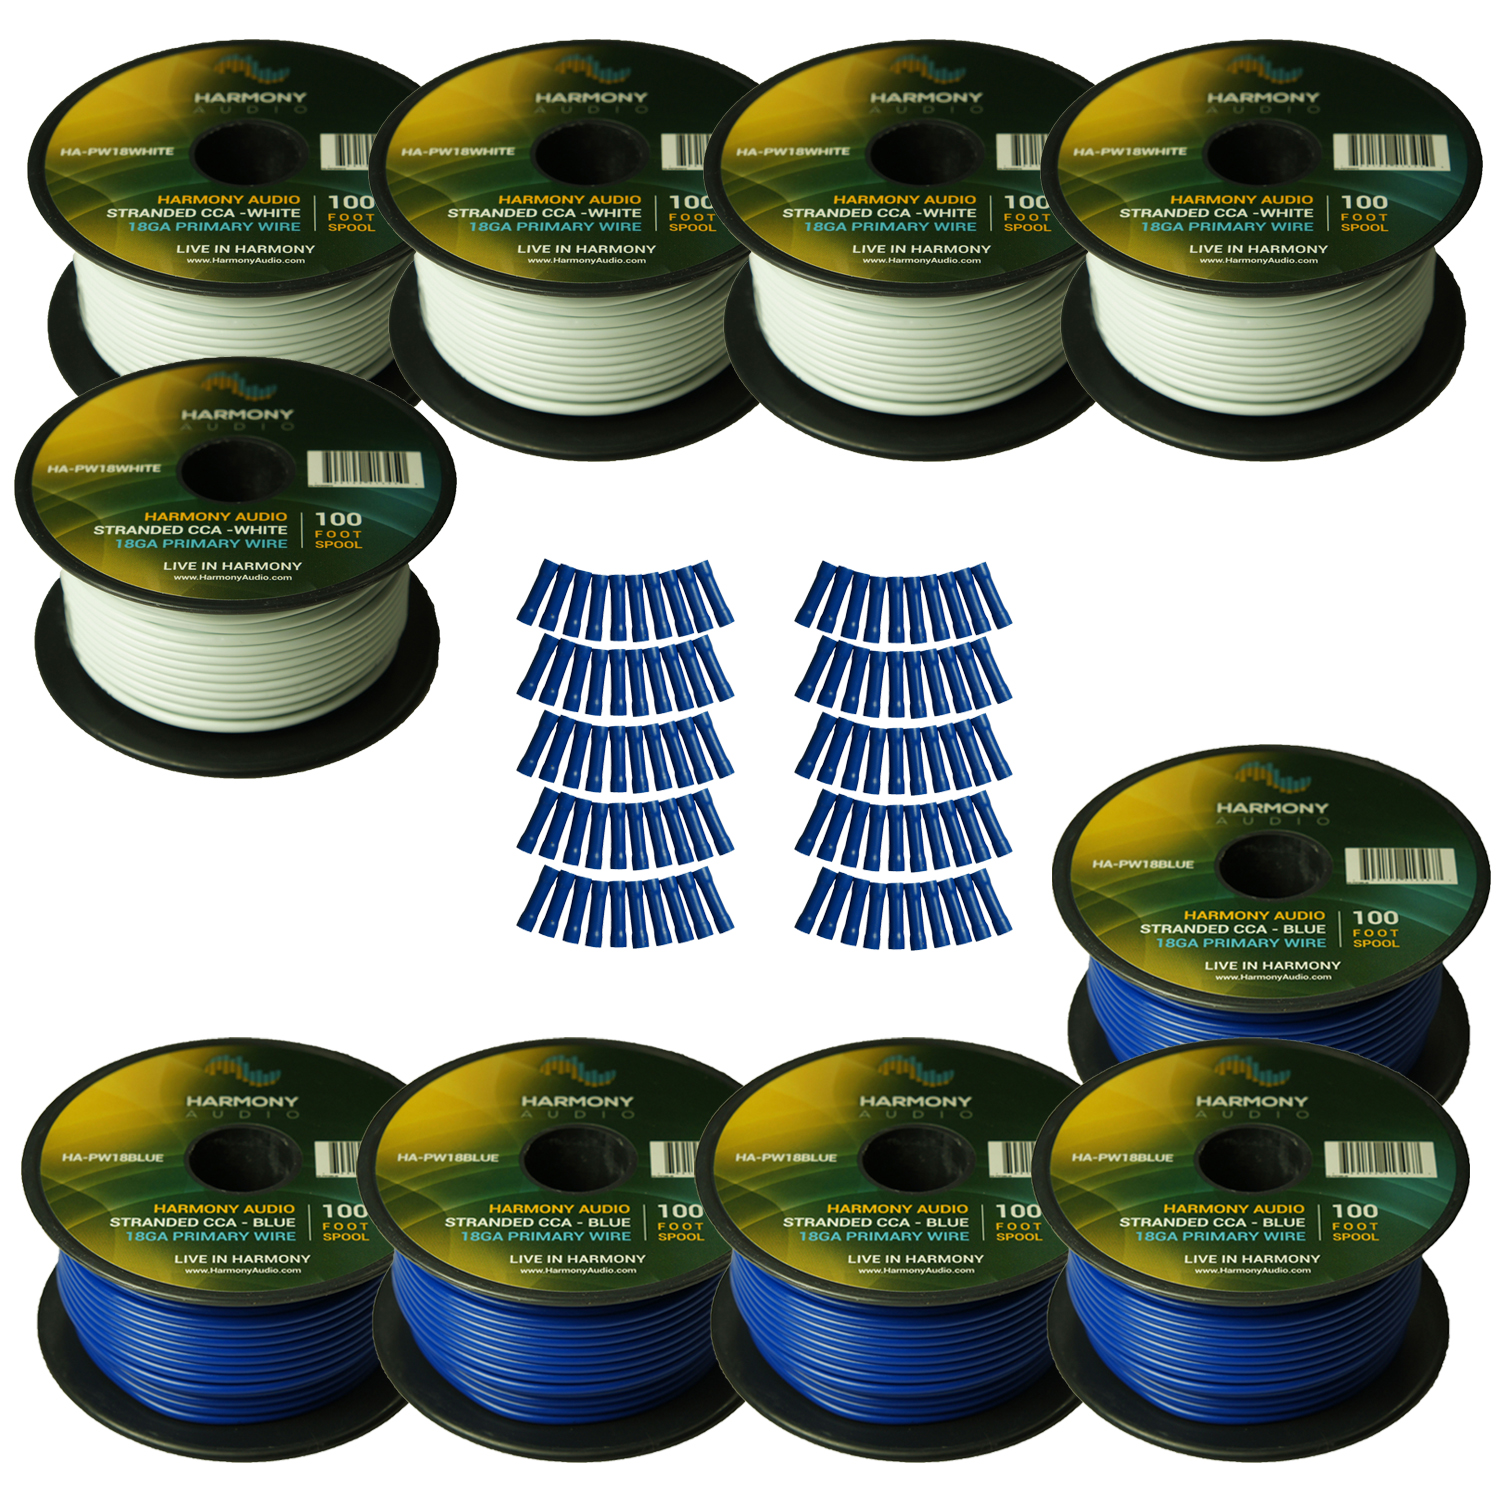 Harmony Audio Primary Single Conductor 18 Gauge Power or Ground Wire - 10 Rolls - 1000 Feet - White & Blue for Car Audio / Trailer / Model Train / Remote